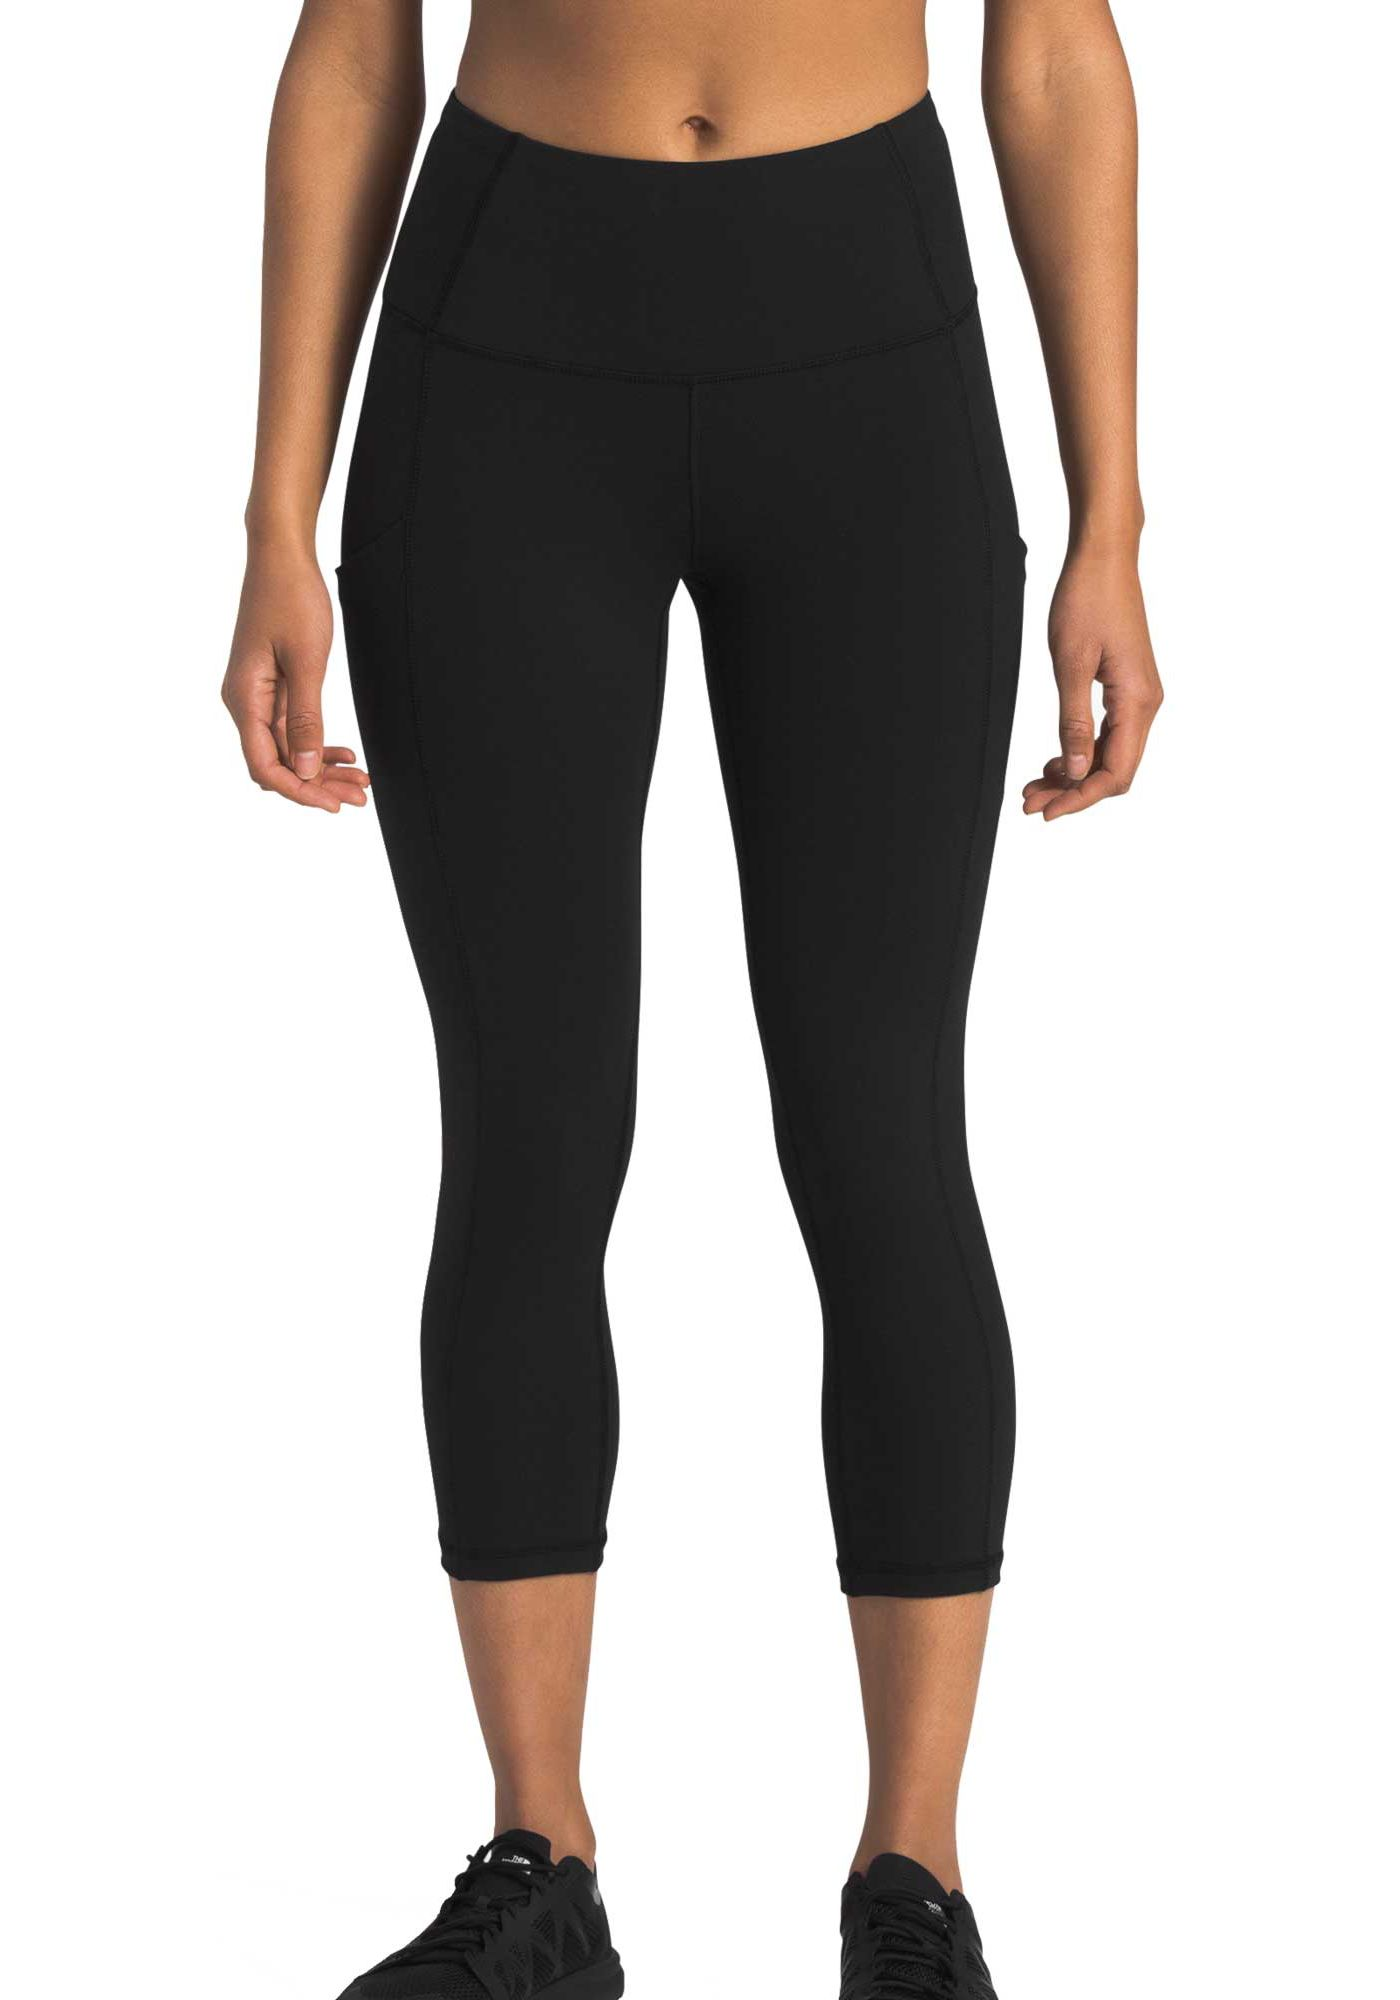 The North Face Women's Motivation High-Rise Pocket Cropped Tight